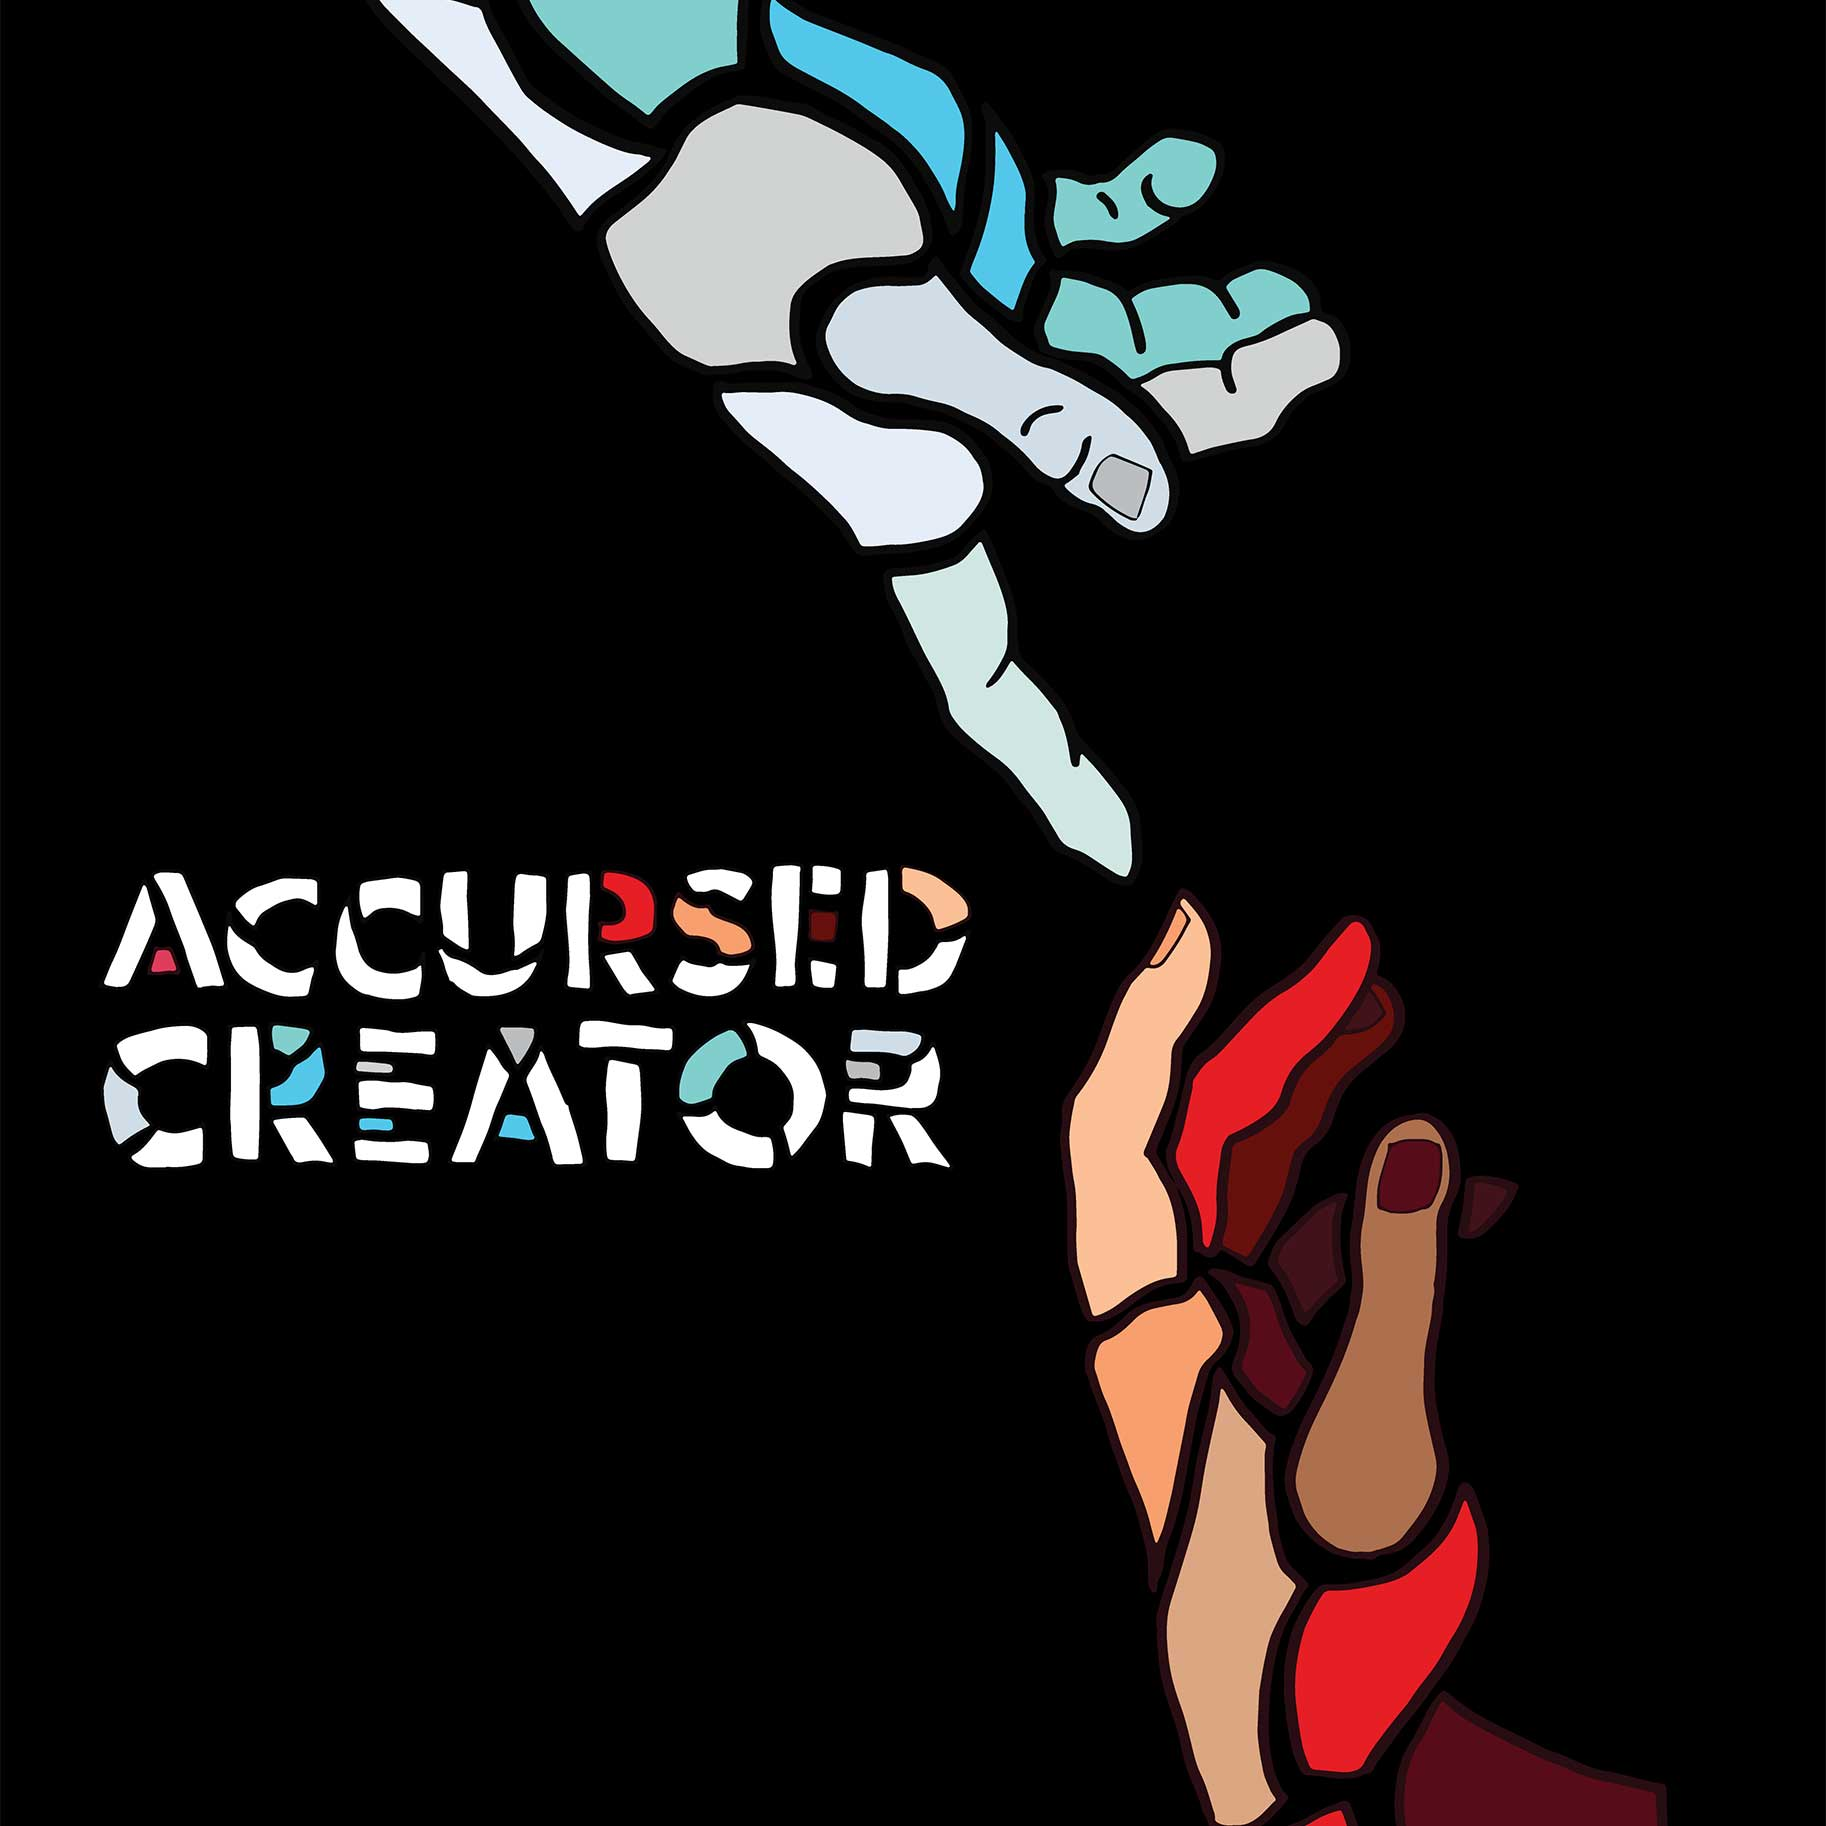 two hands reaching towards each other, one from the bottom and one from the top. the text reads 'accursed creator'